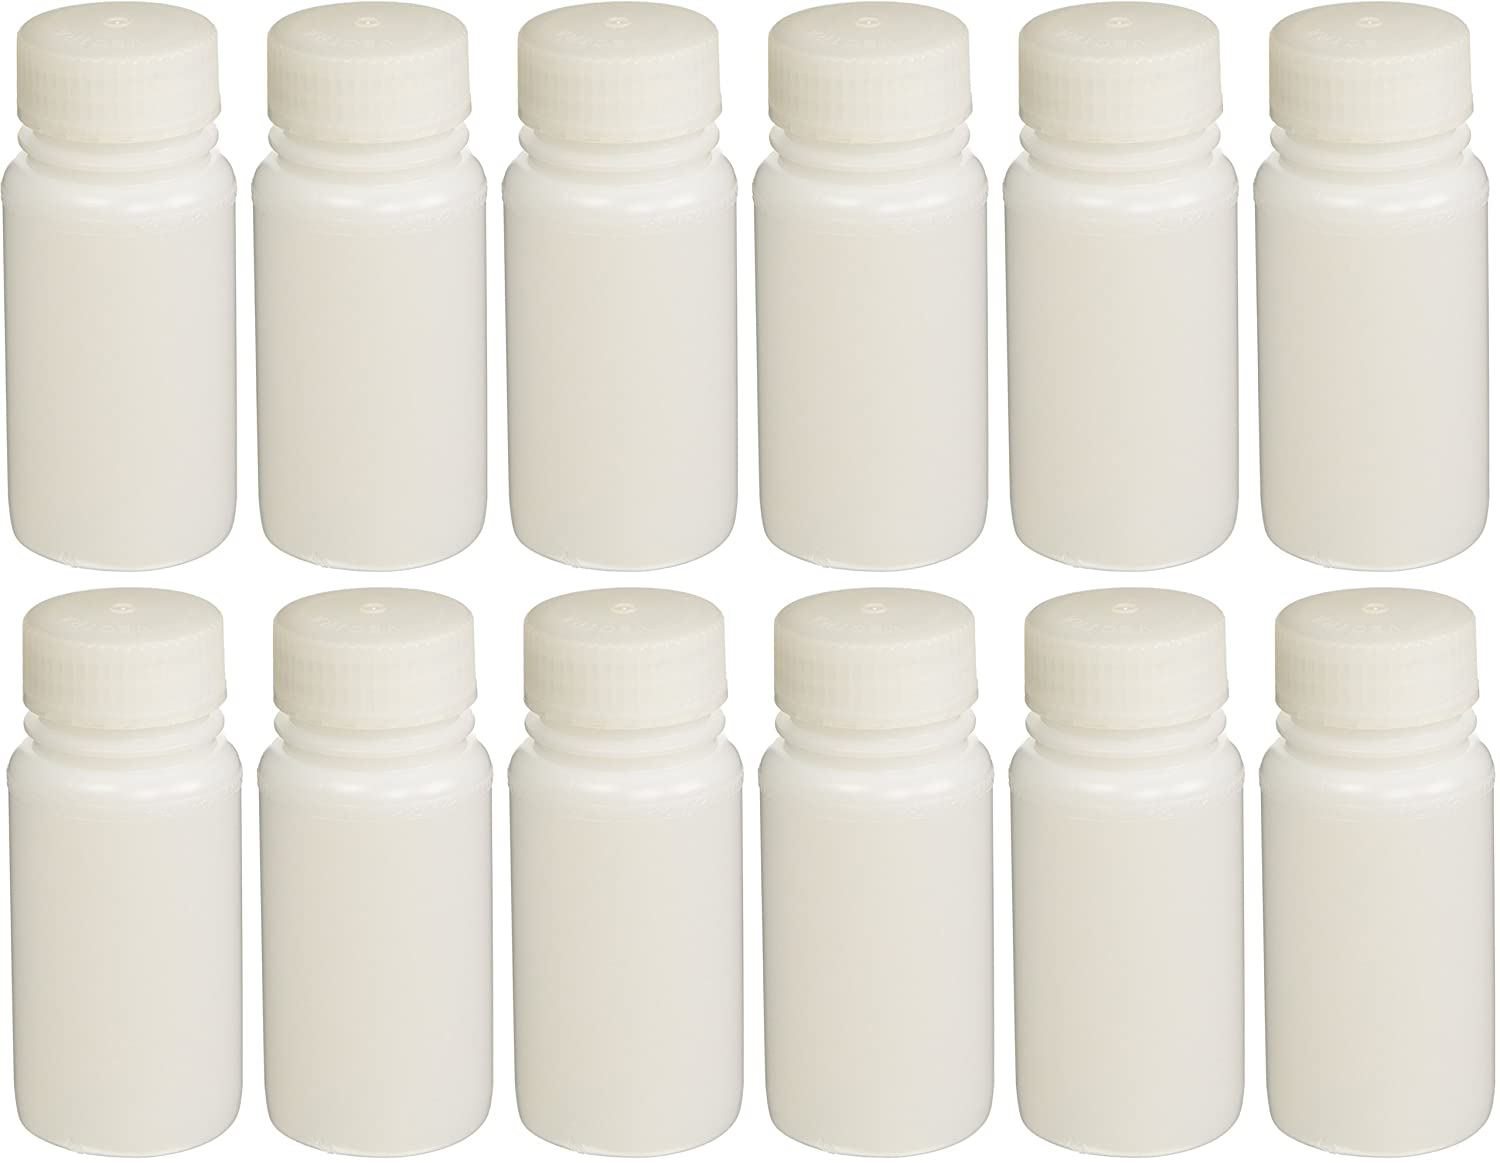 HDPE with PP Closure 12//Pack Wide Mouth Round 30mL labForce 1155L44 Bottle